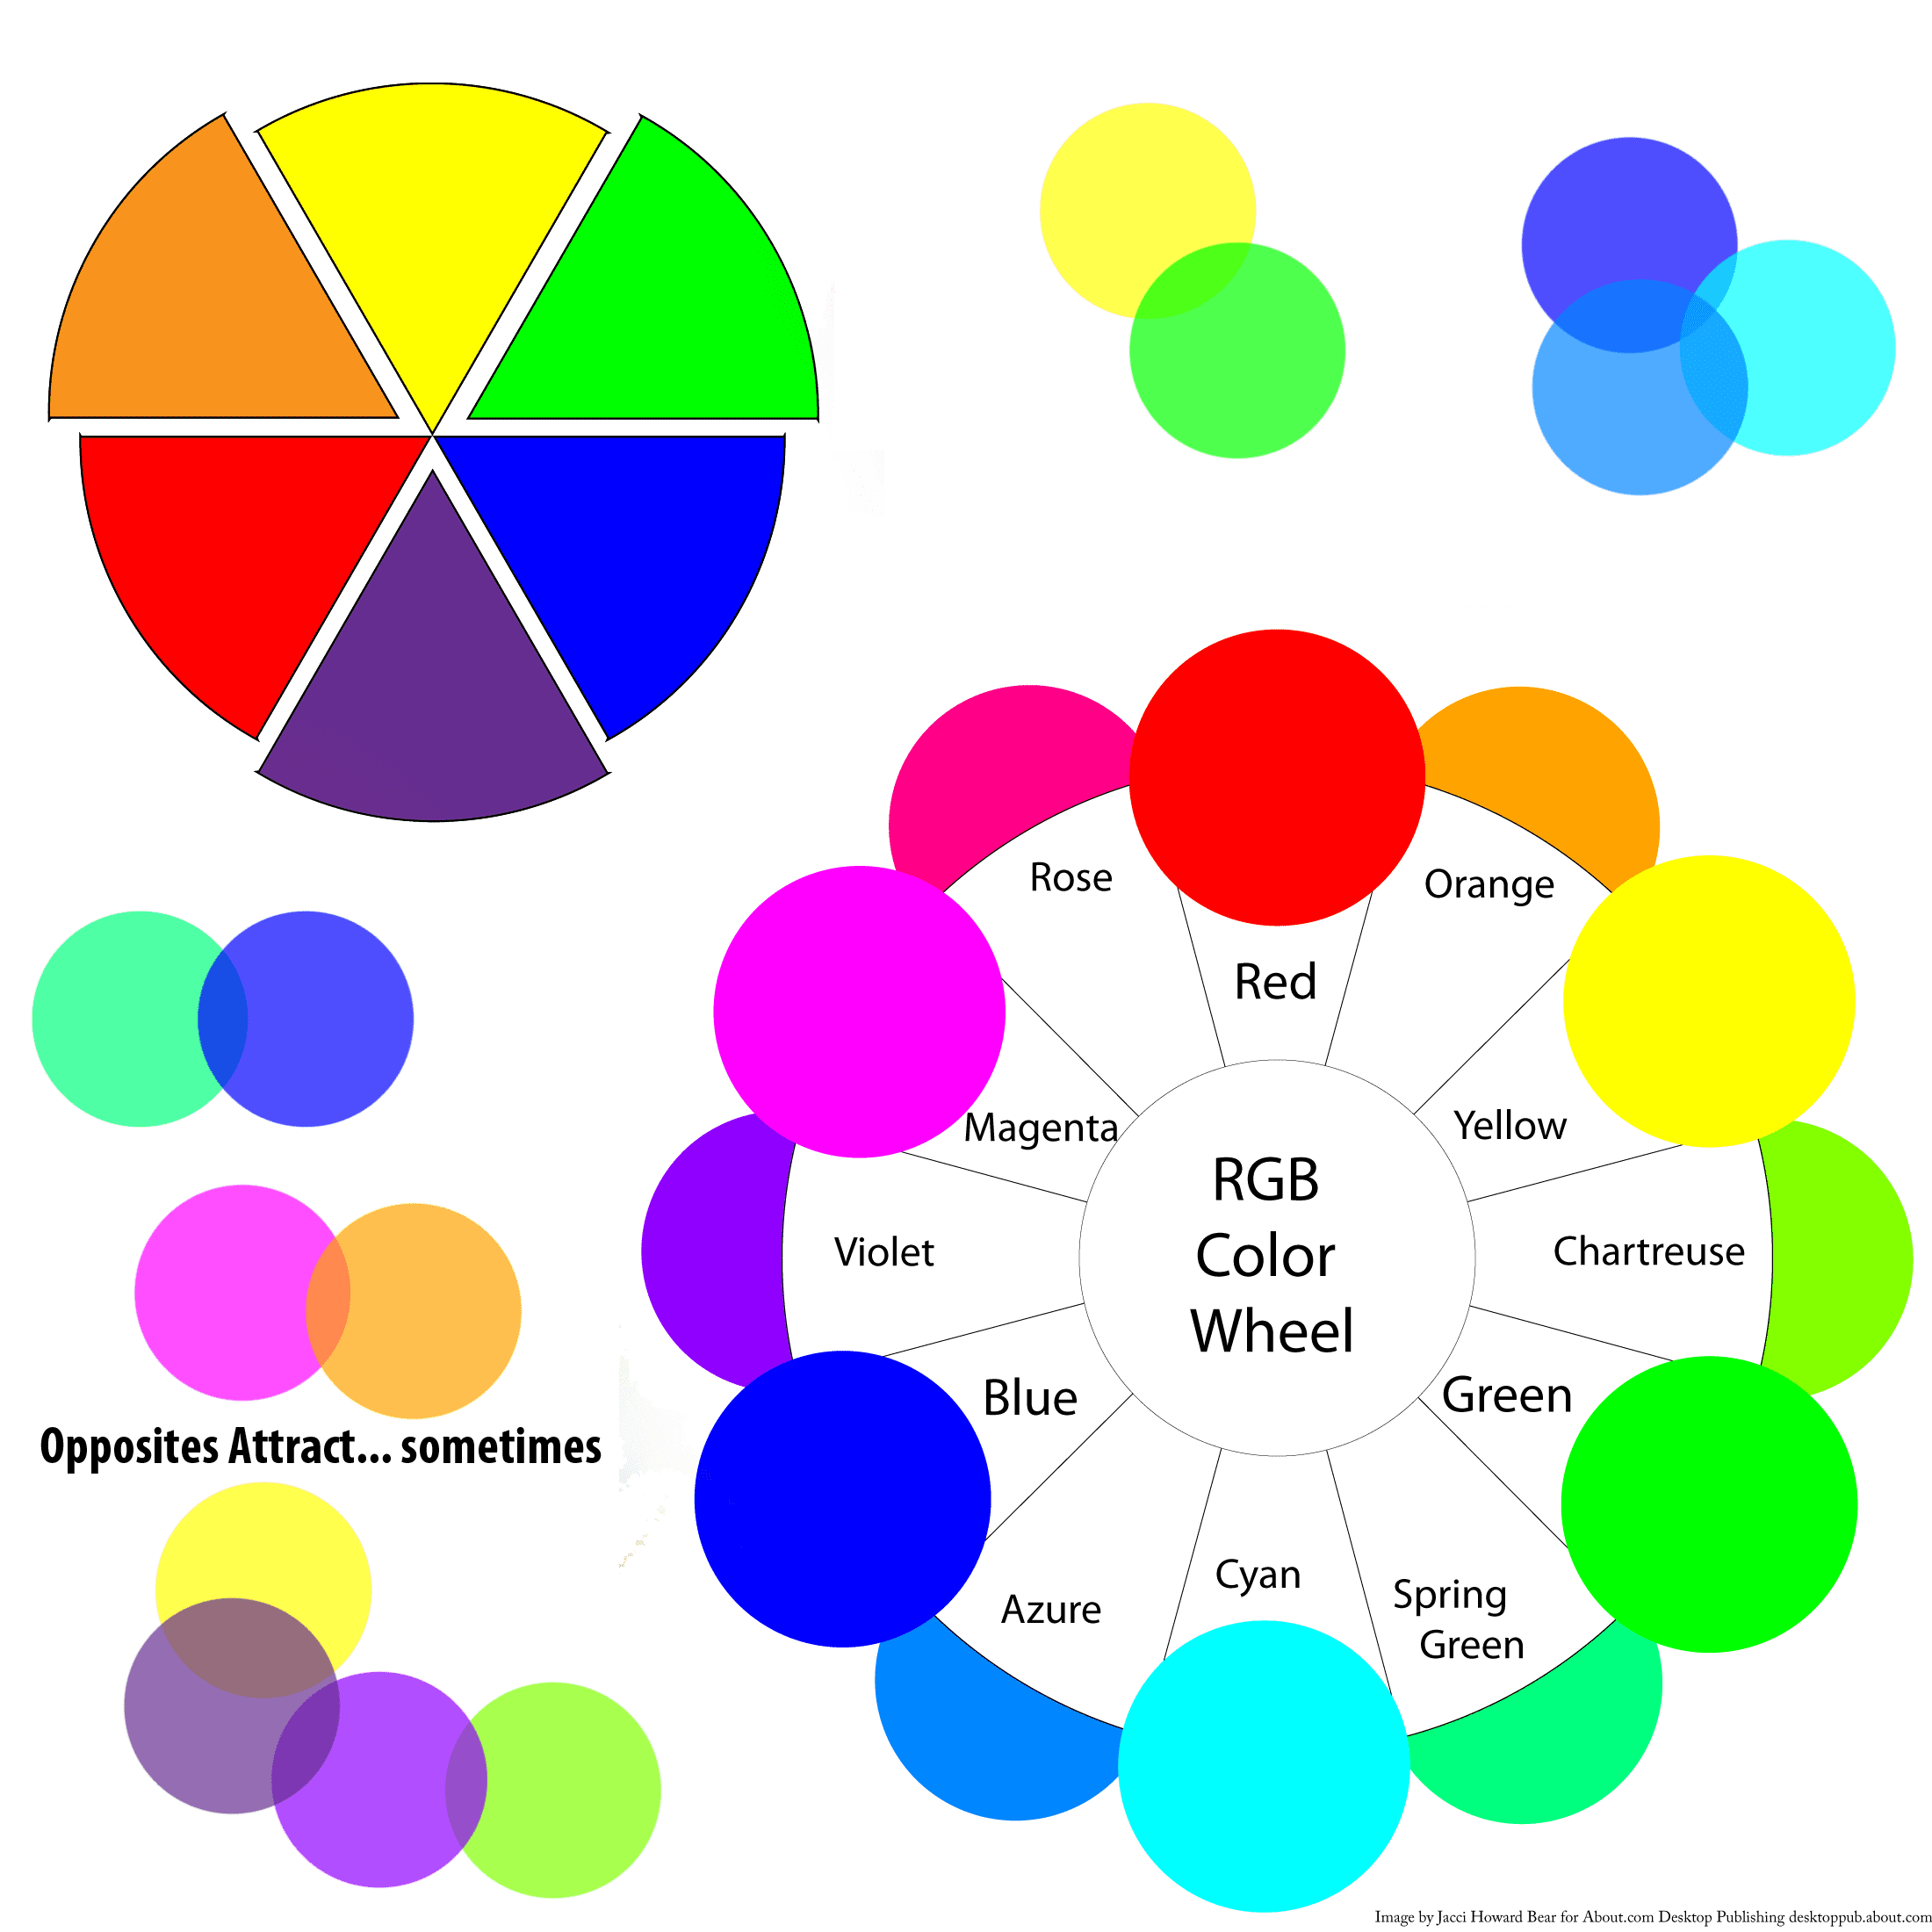 Choosing Colors from the Color Wheel